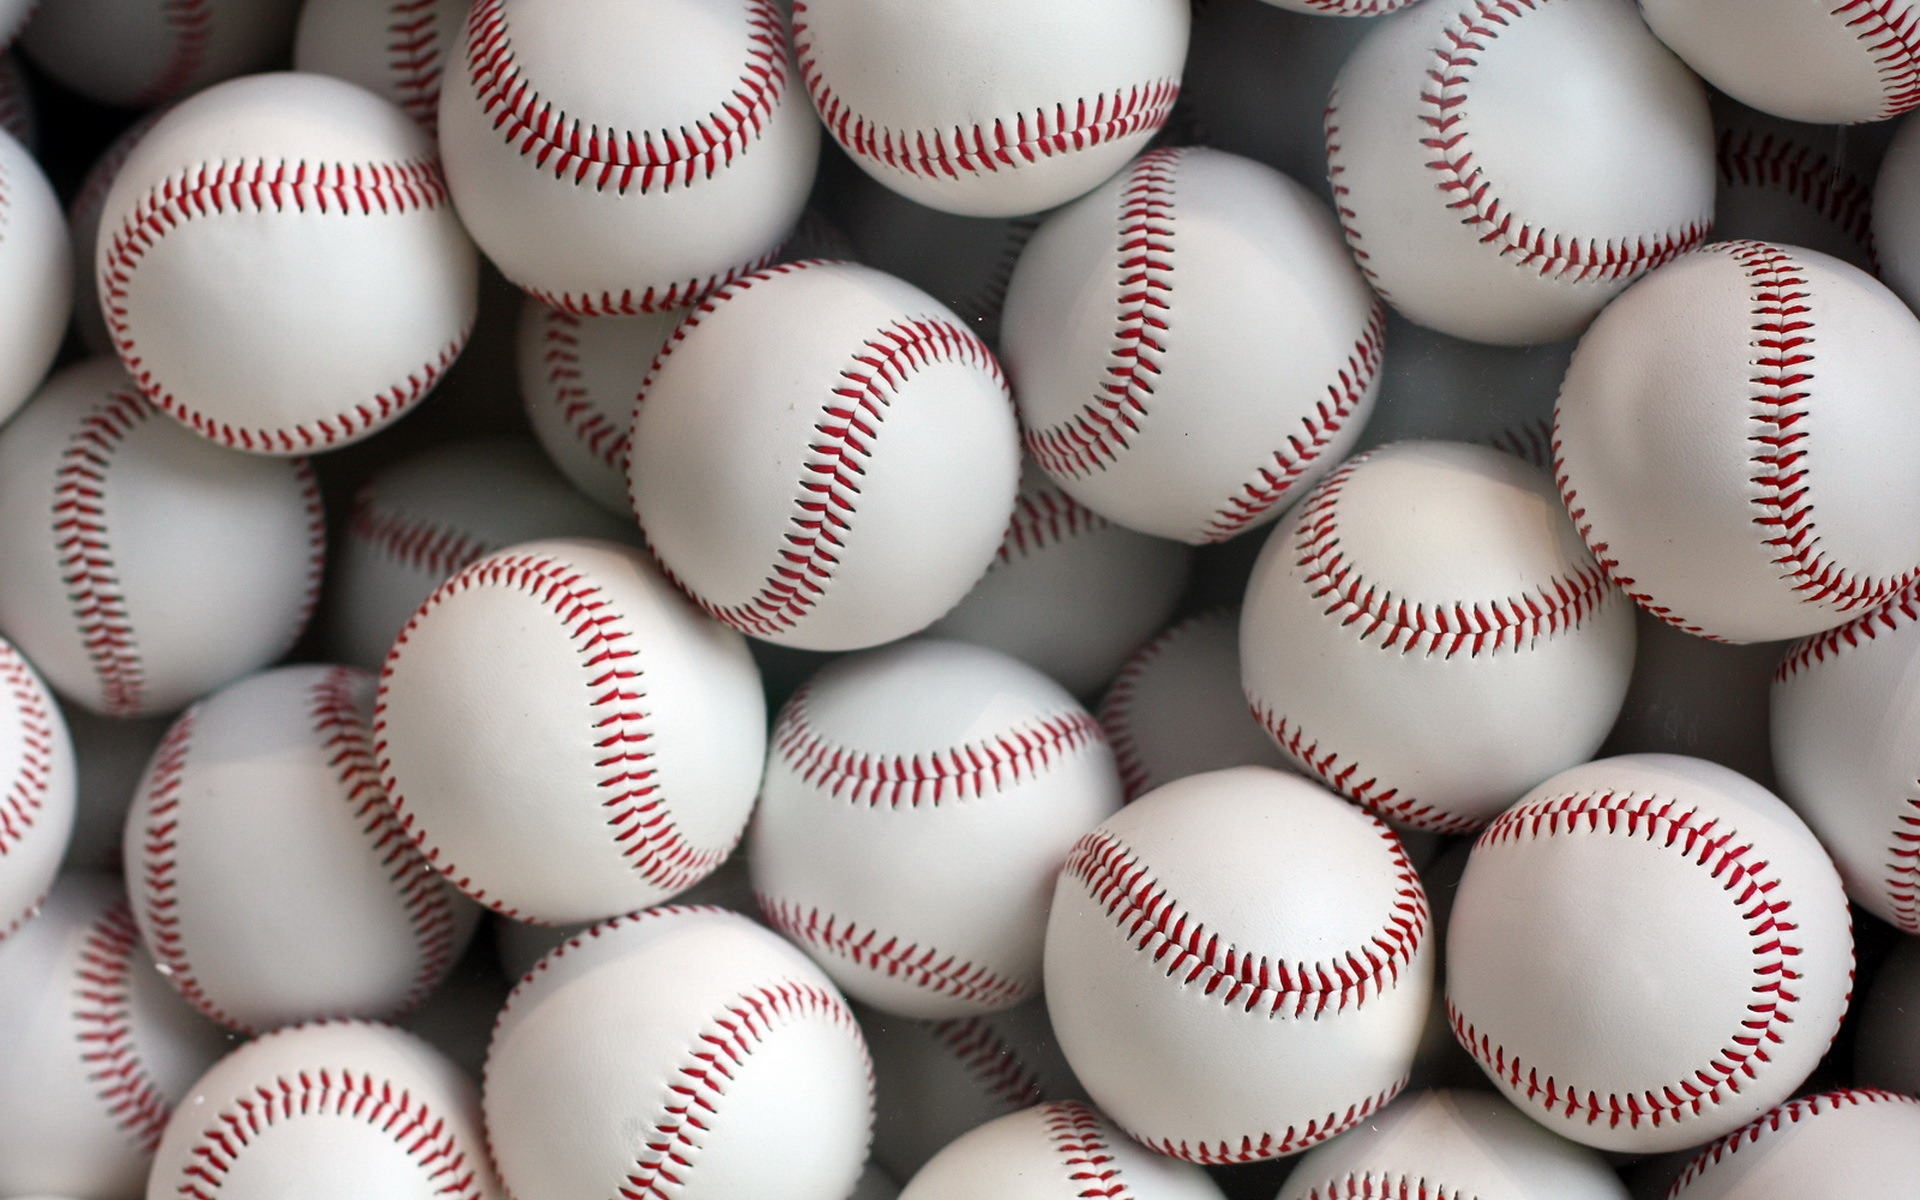 Sports Baseball Wallpaper